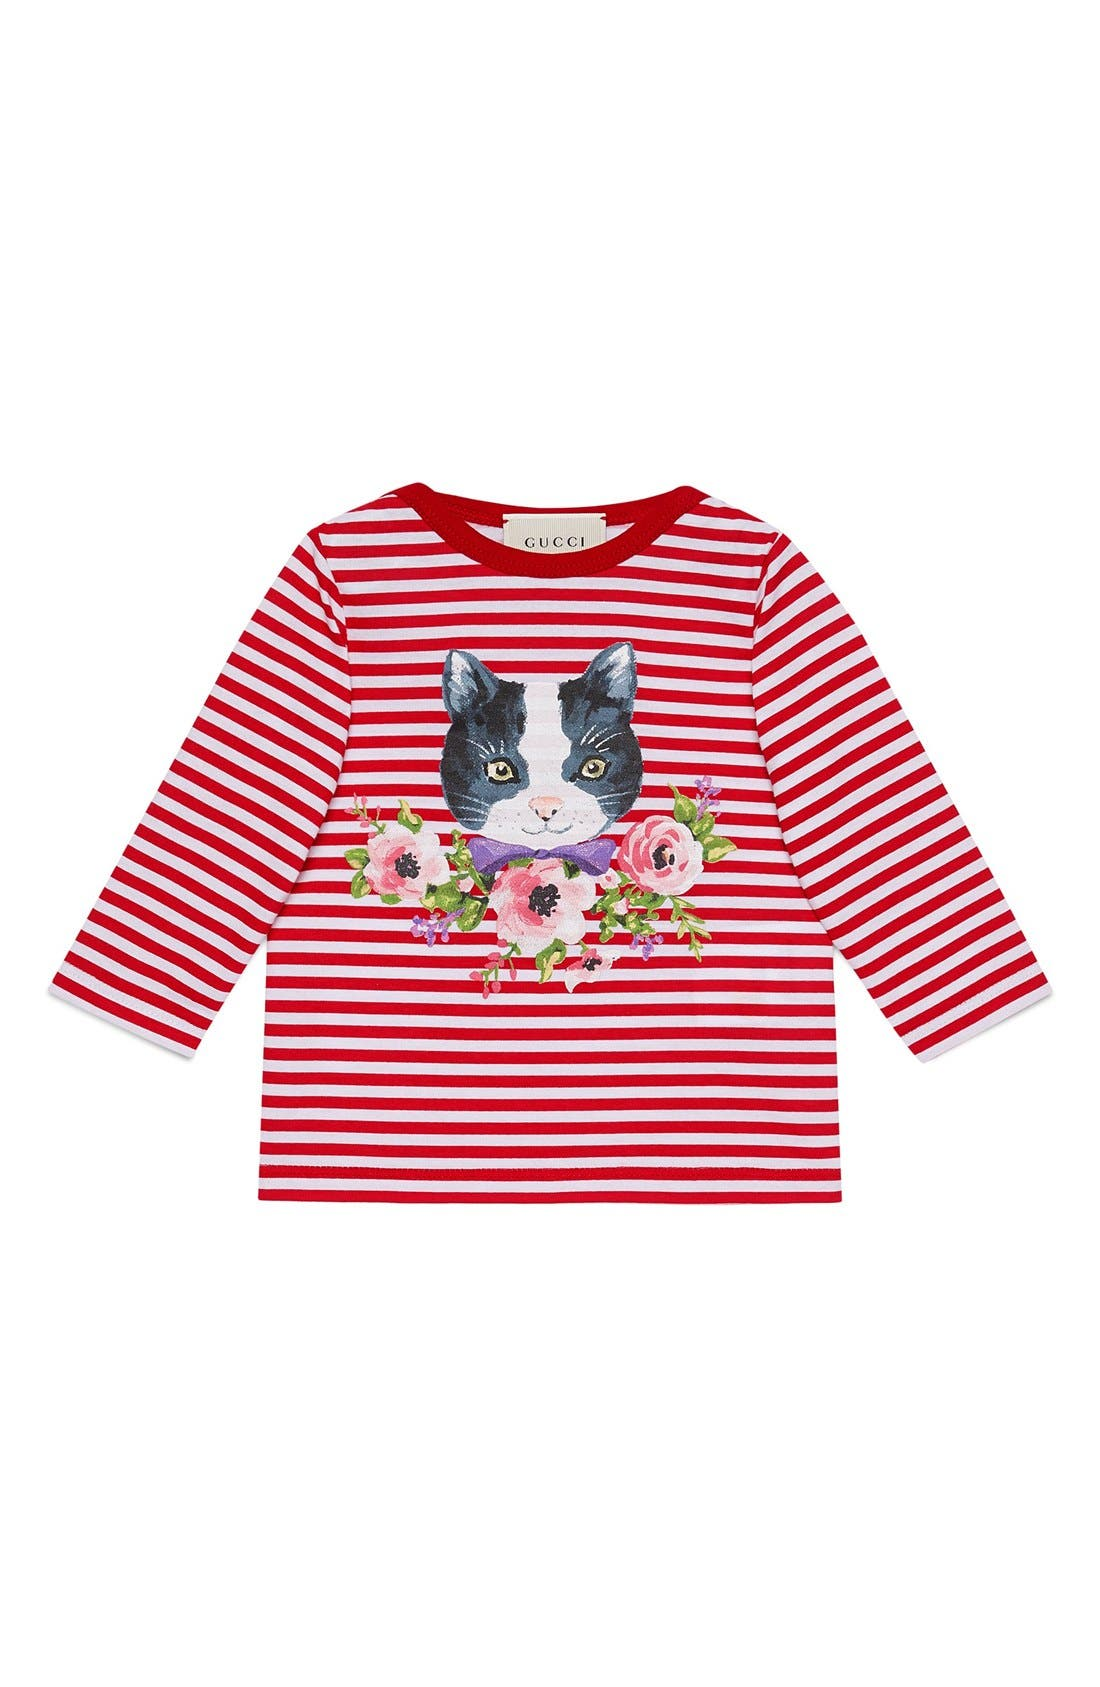 GUCCI Cat Graphic Stripe Long Sleeve Tee